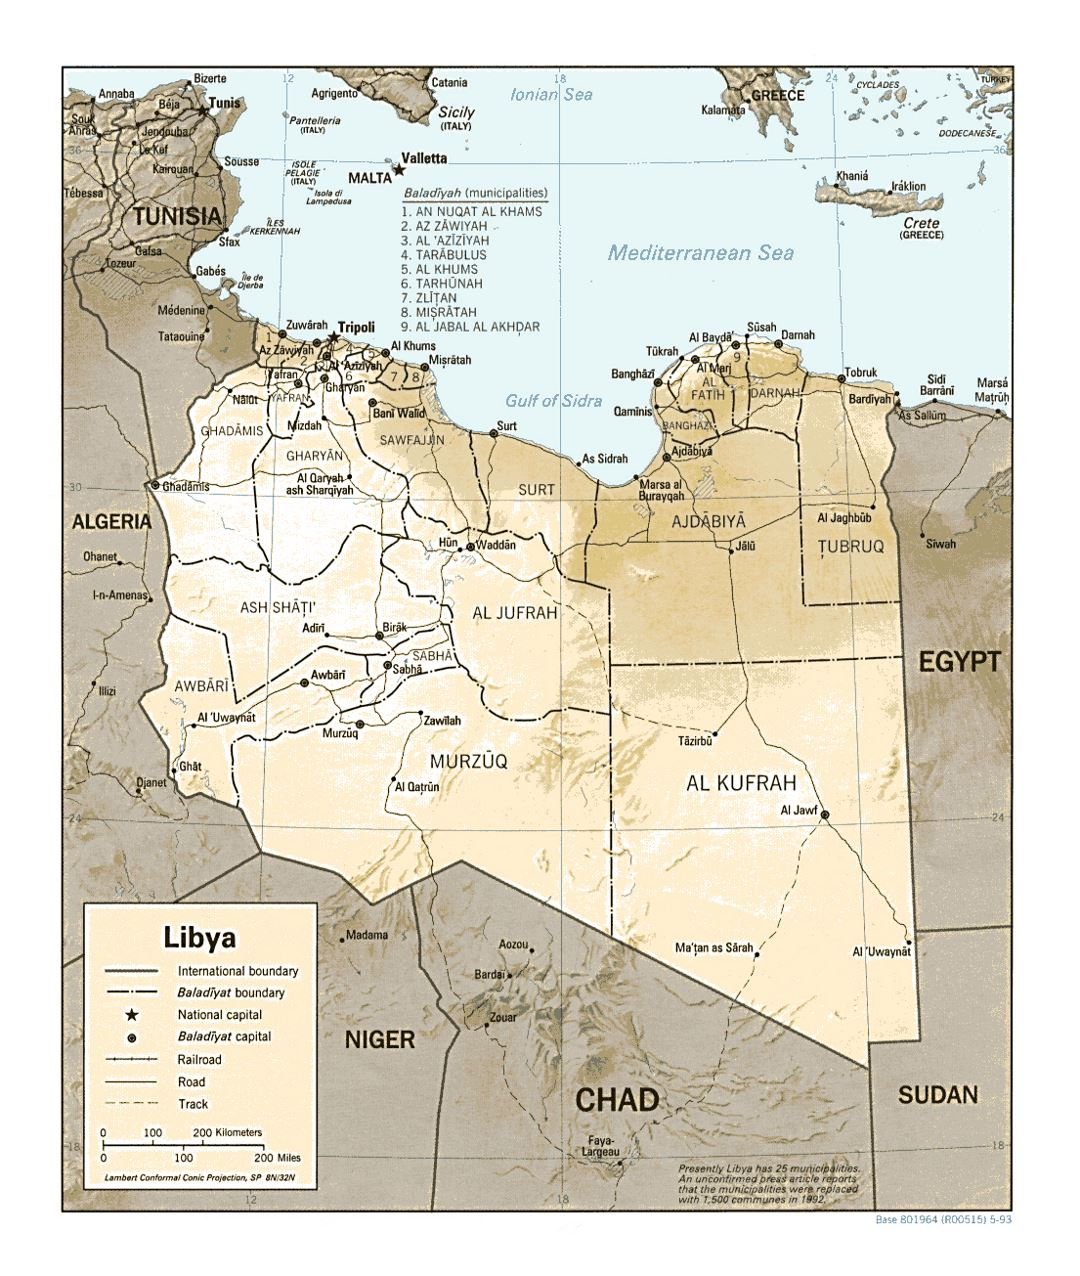 Detailed political and administrative map of Libya with relief, roads, railroads and major cities - 1993